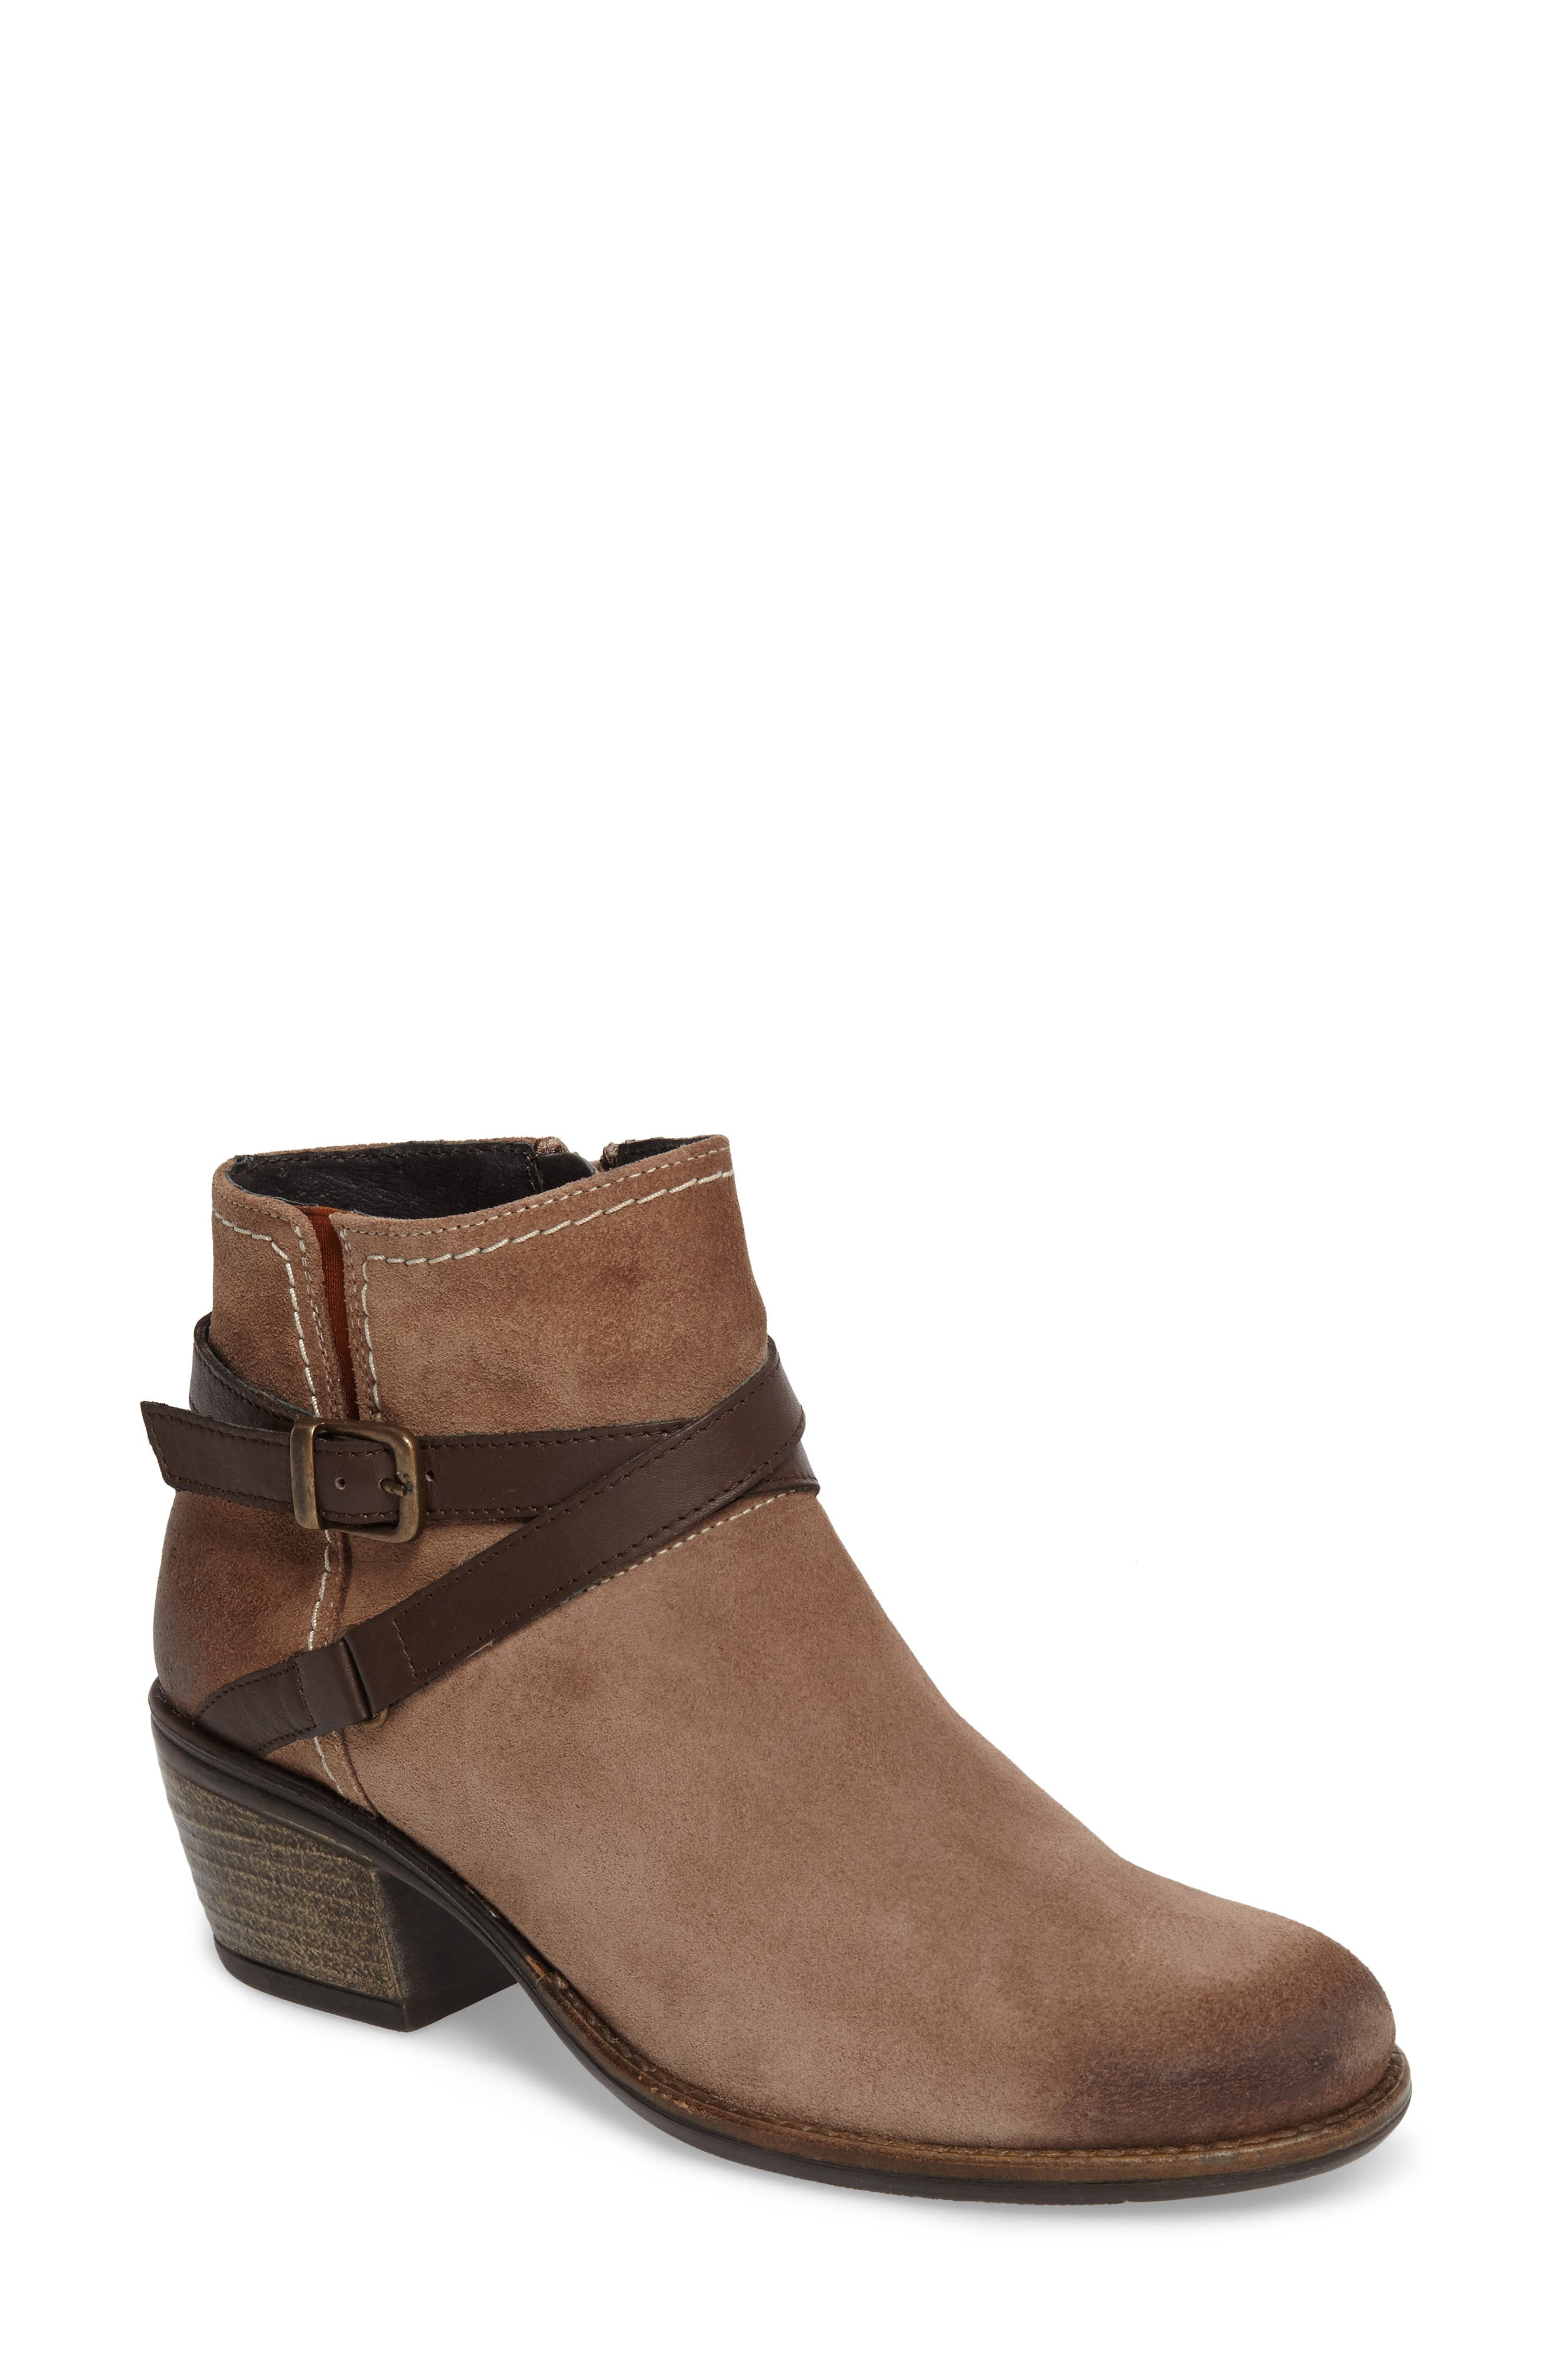 Greenville Waterproof Bootie,                             Main thumbnail 1, color,                             Taupe